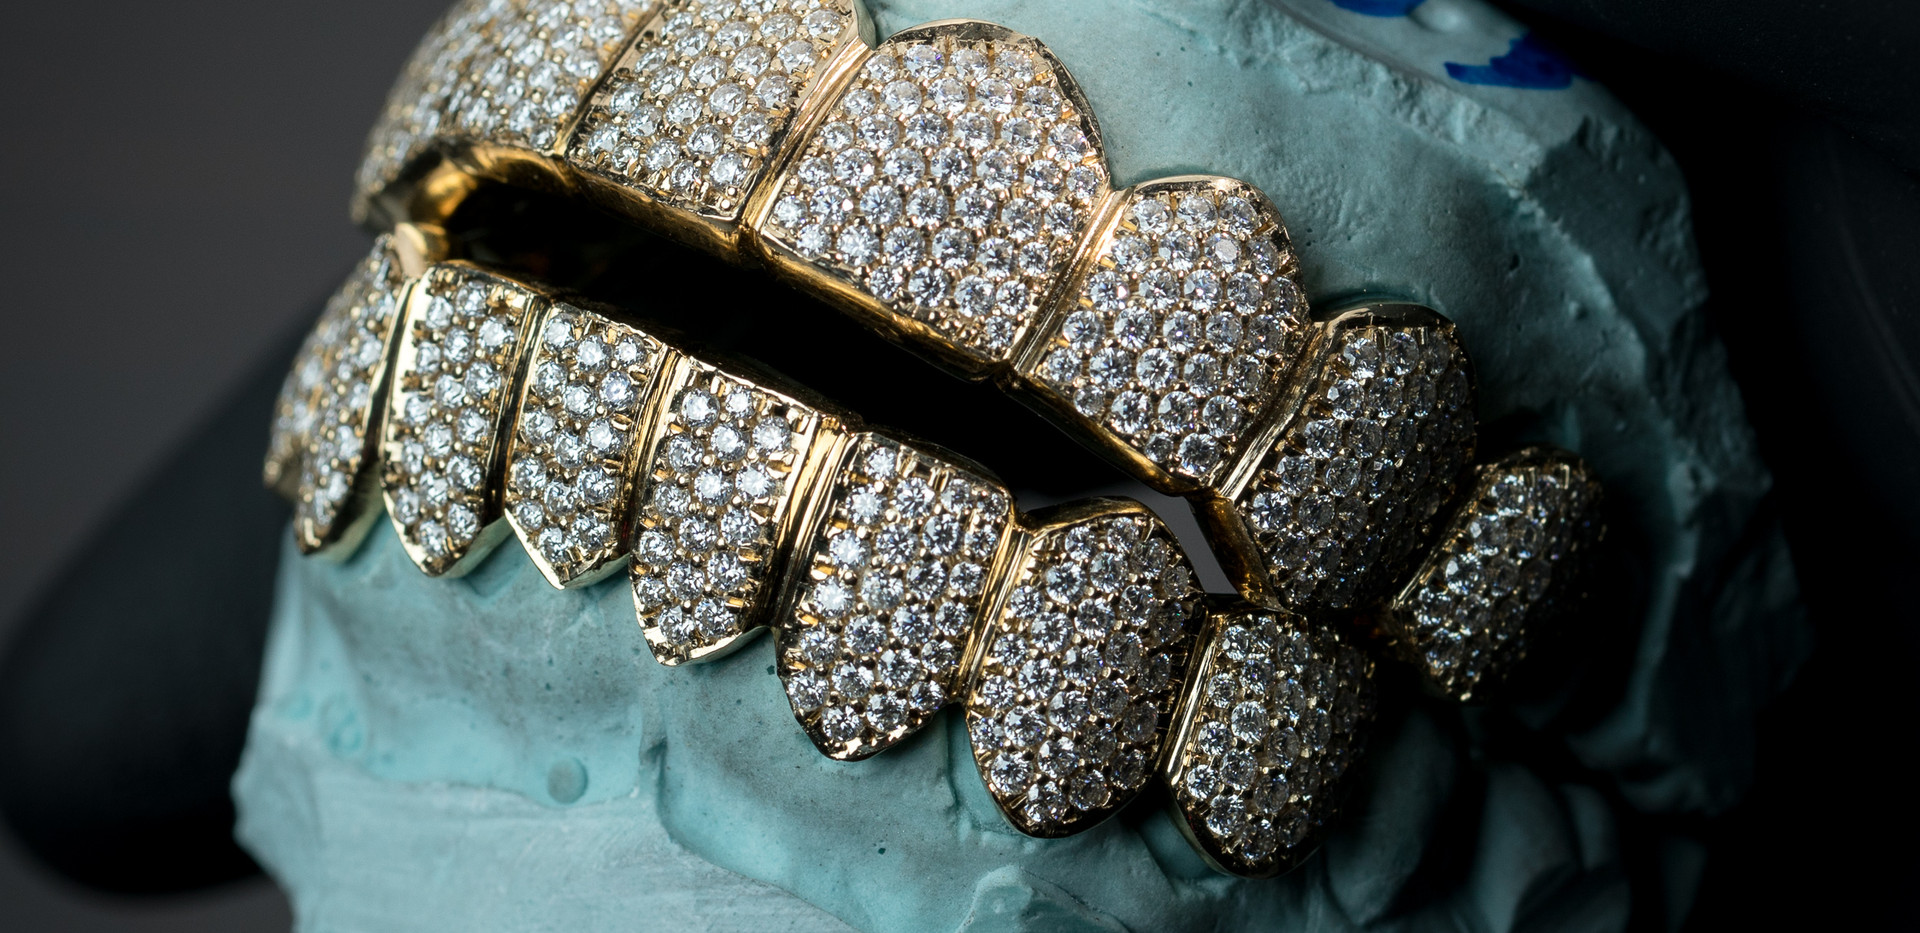 14K Gold 8 on 8 Grillz